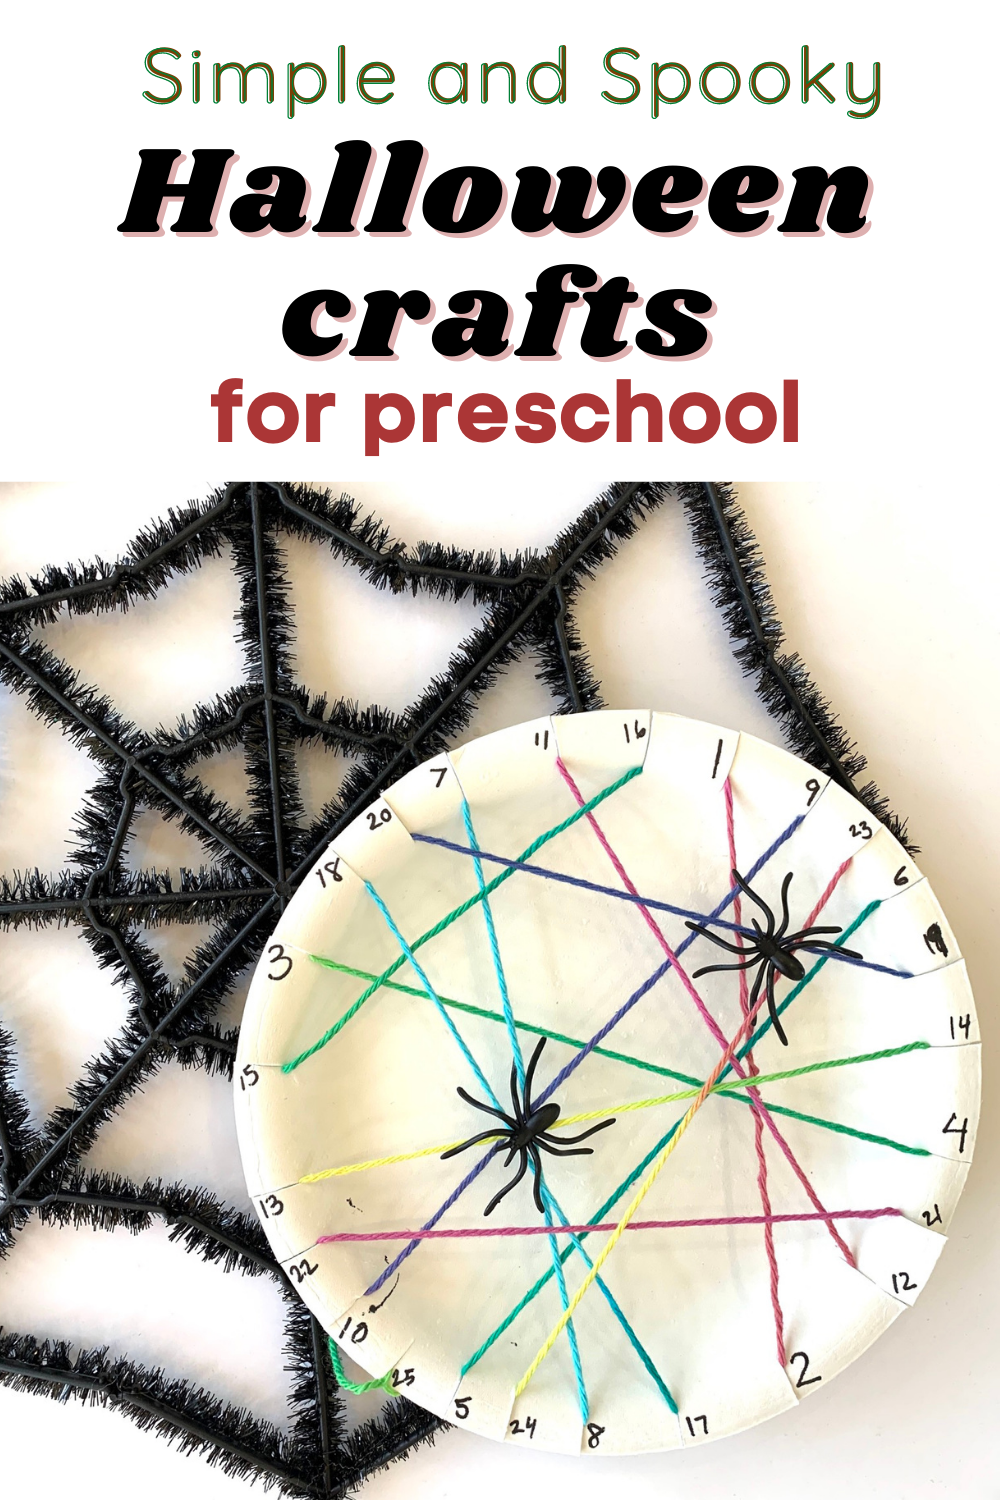 Spiderweb craft made from yarn and a paper plate